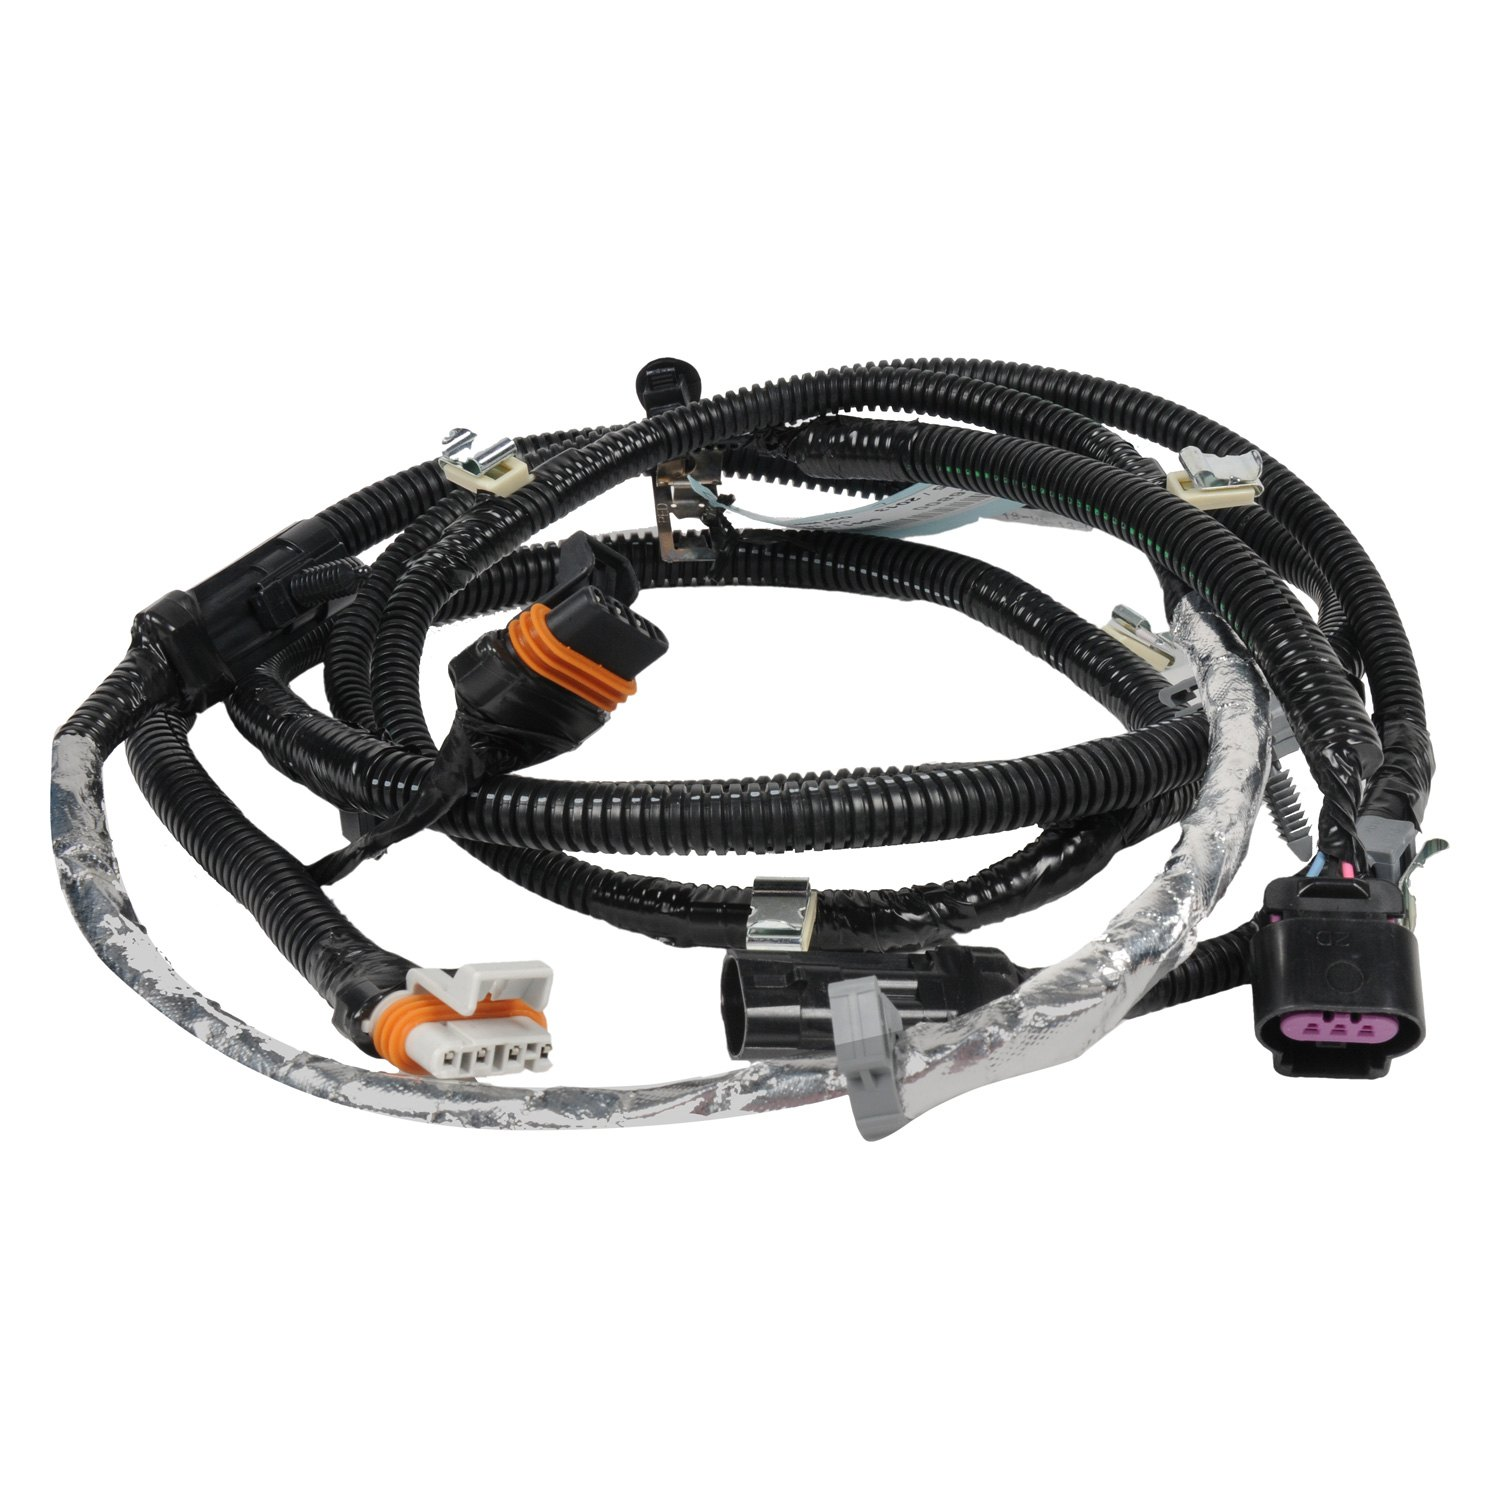 acdelco� 15803979 gm original equipment™ electric brake control wiring harness Chrysler Voyager Headlight Wiring Harness